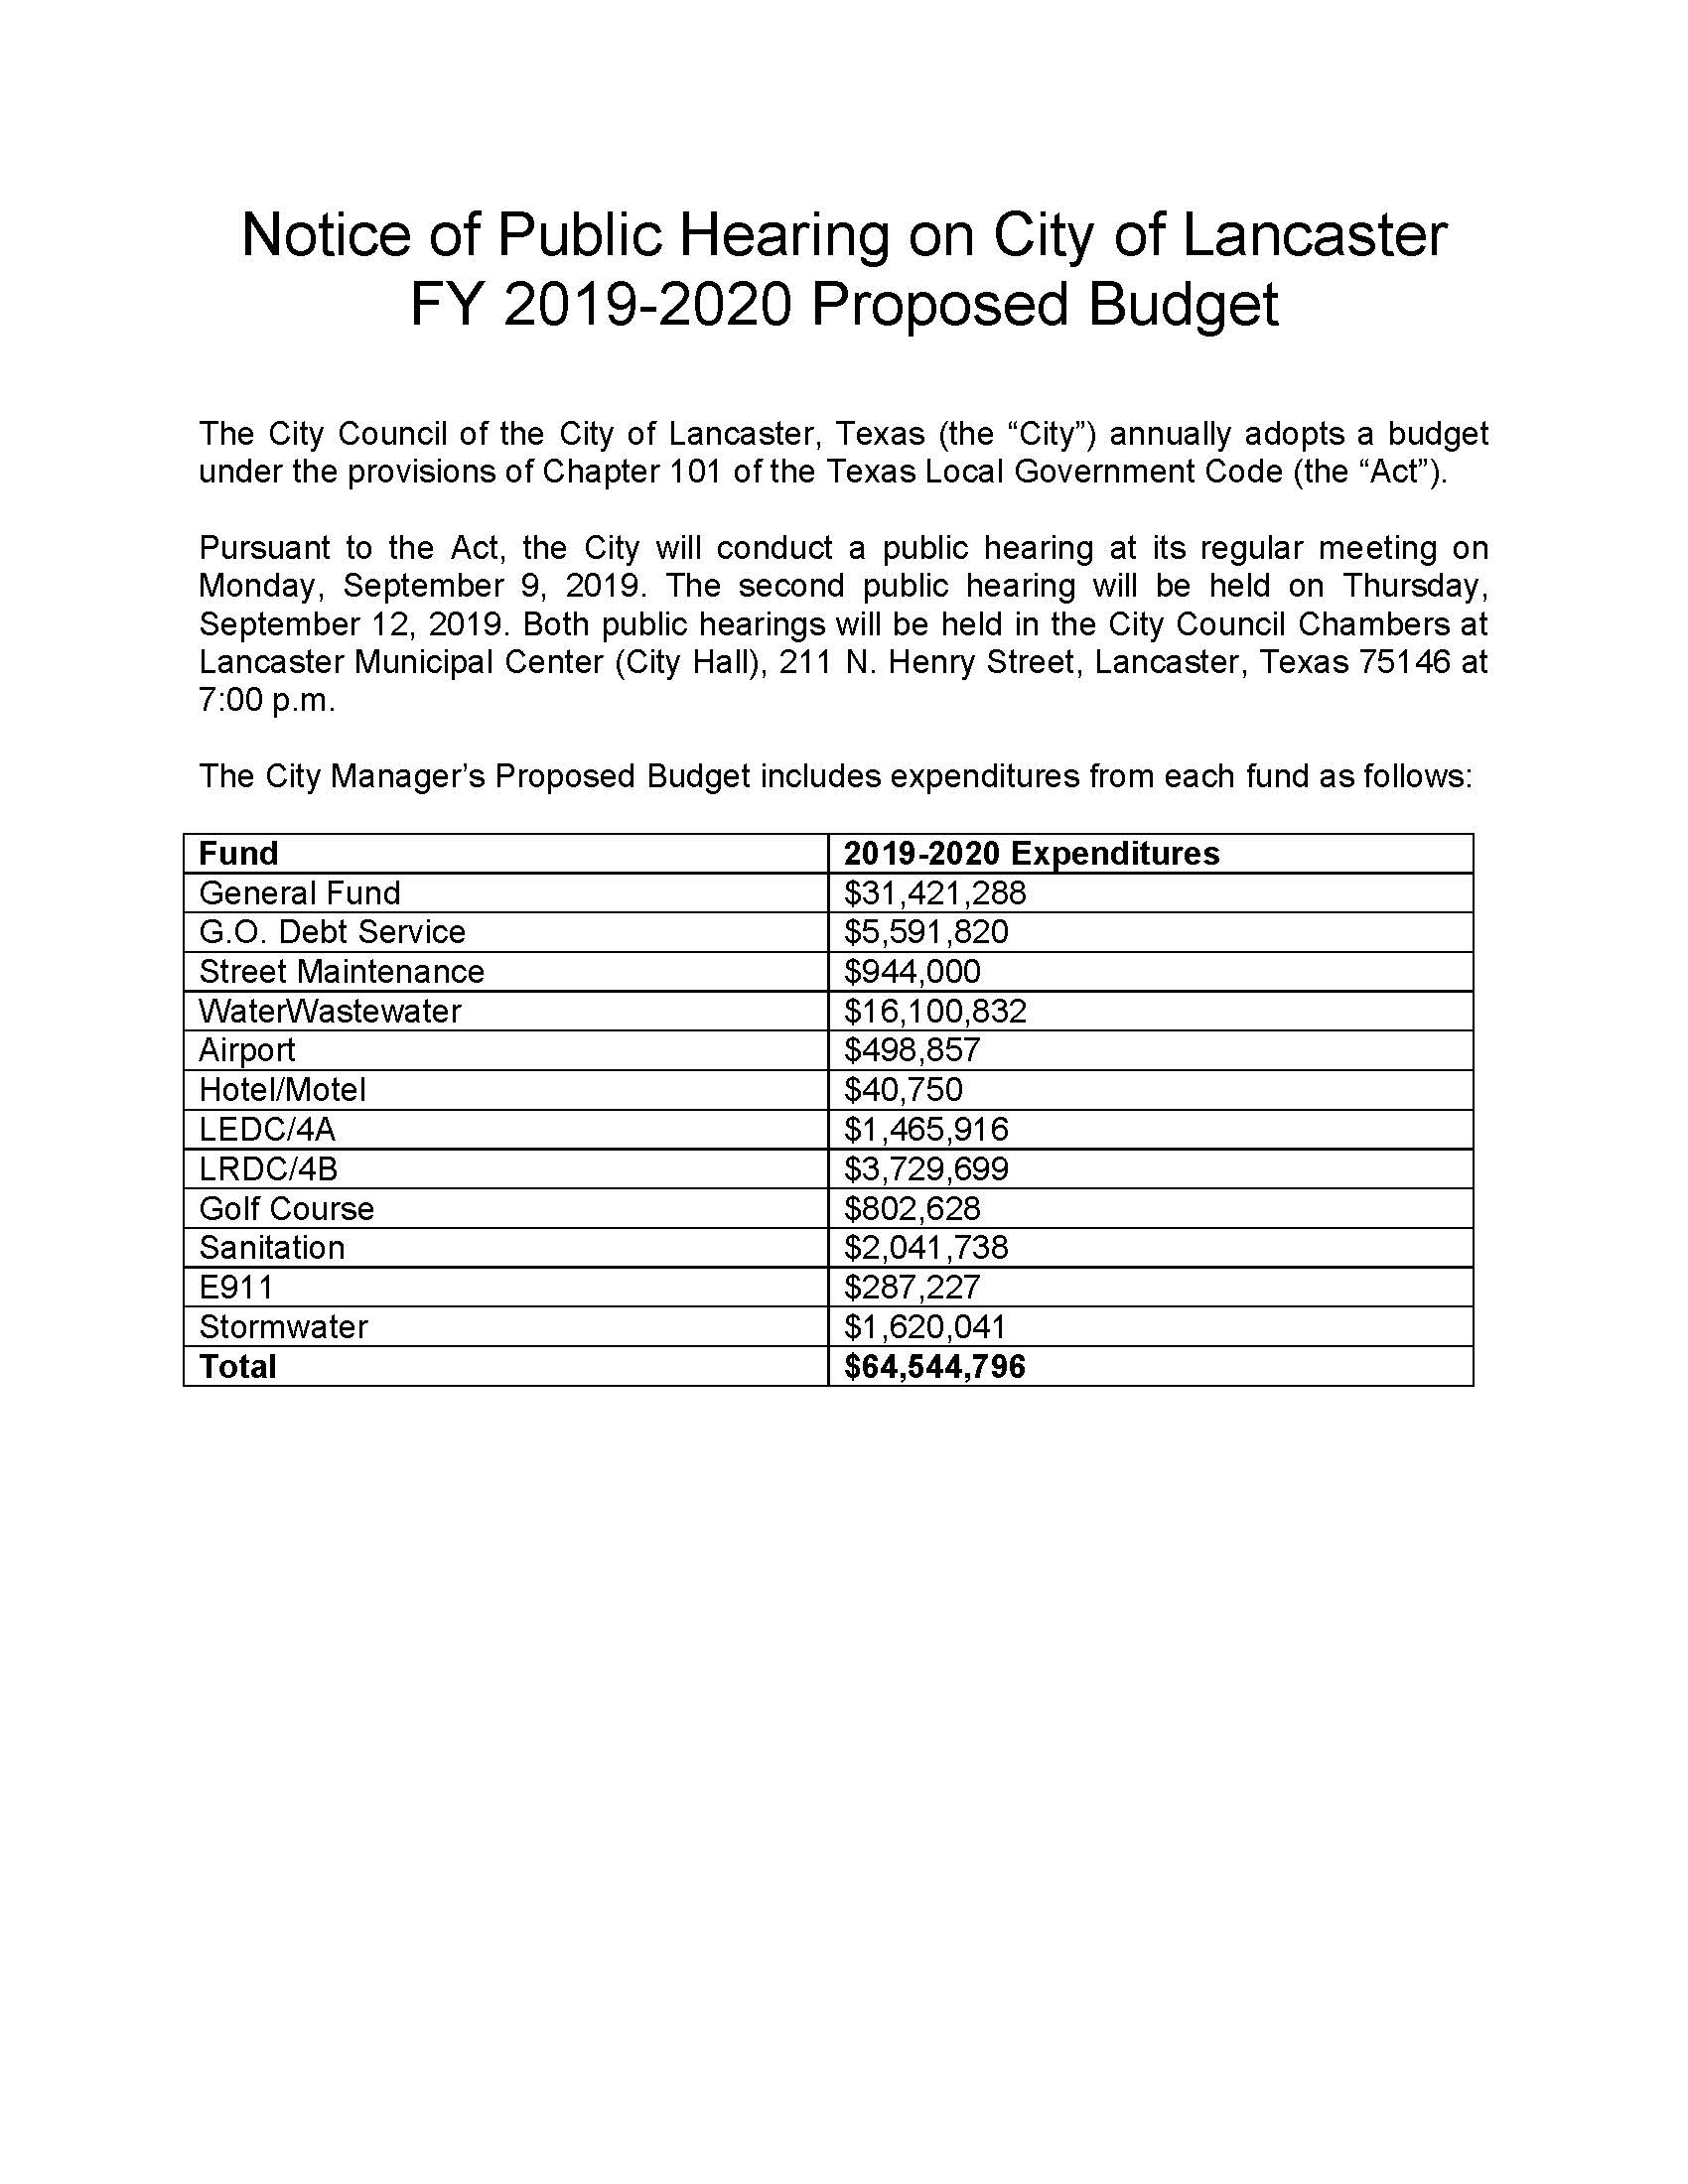 Notice of Proposed Budget